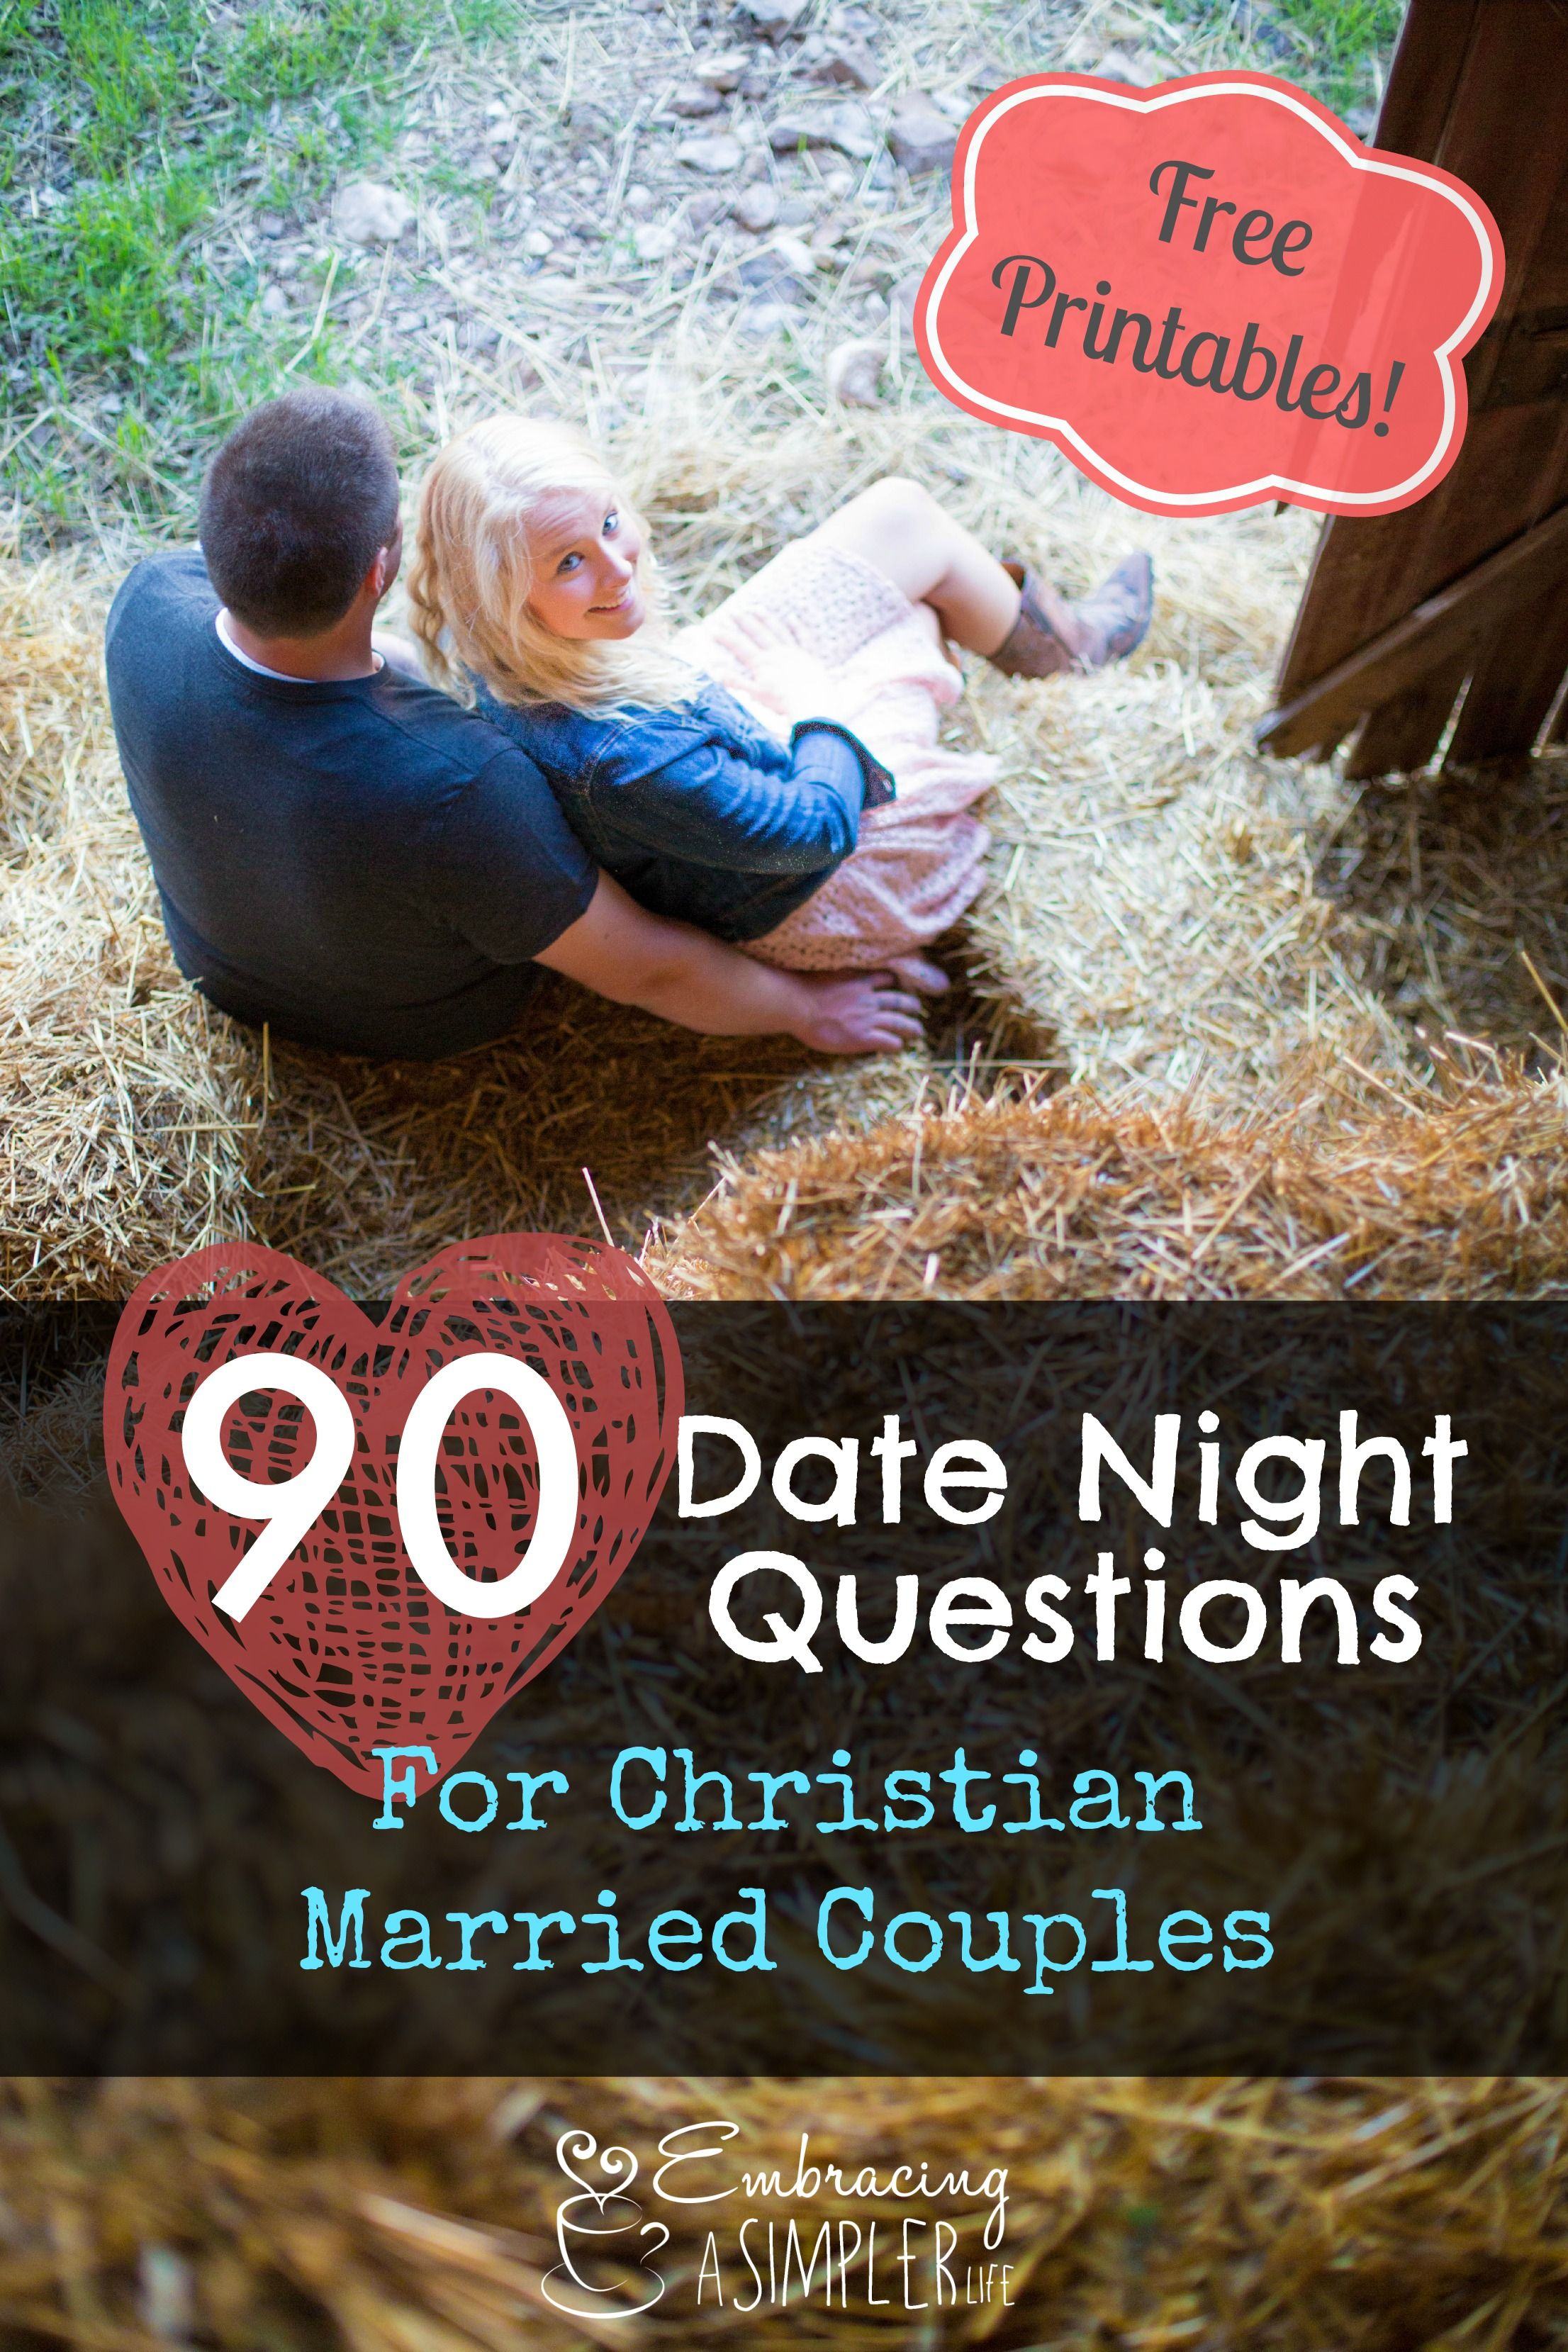 90 Date Night Questions For Married Couples